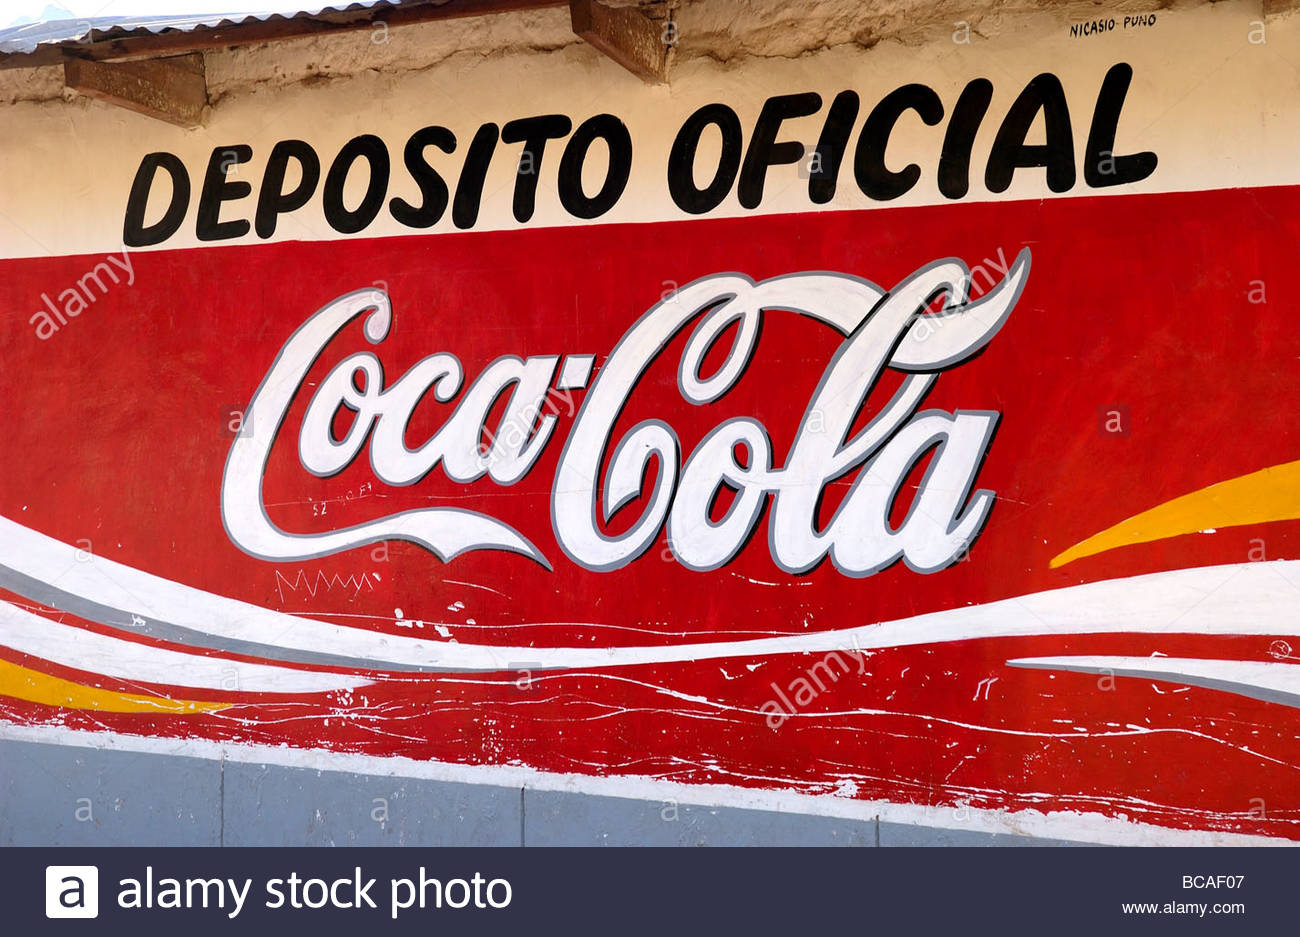 peru coca cola advertisment stock photo 24817527 alamy